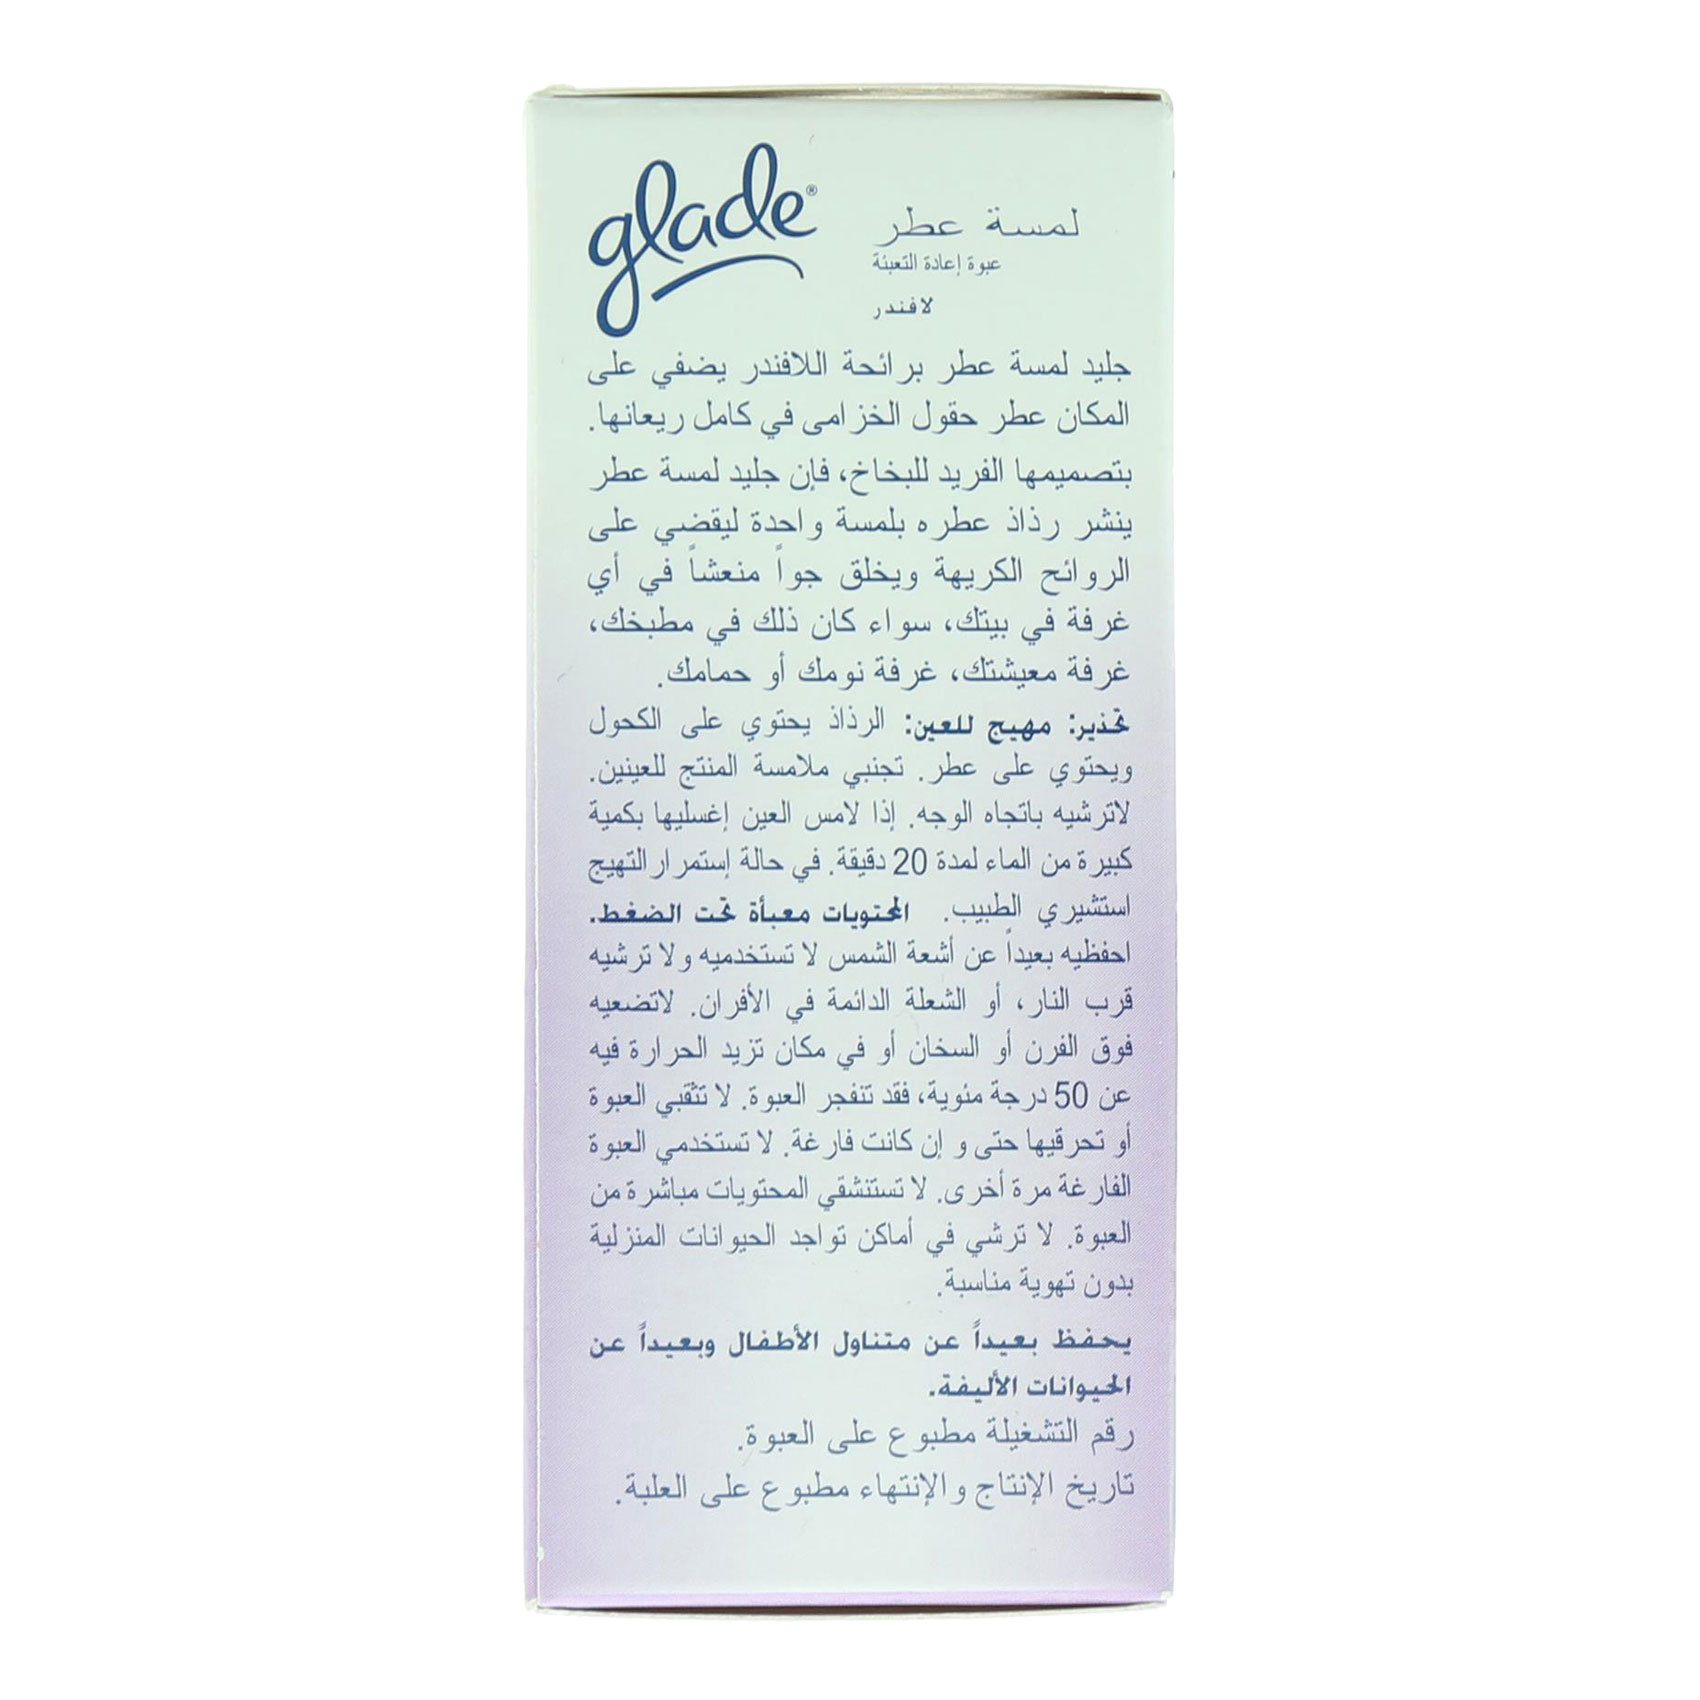 GLADE ONE TOUCH LAVENDER REFILL 10M